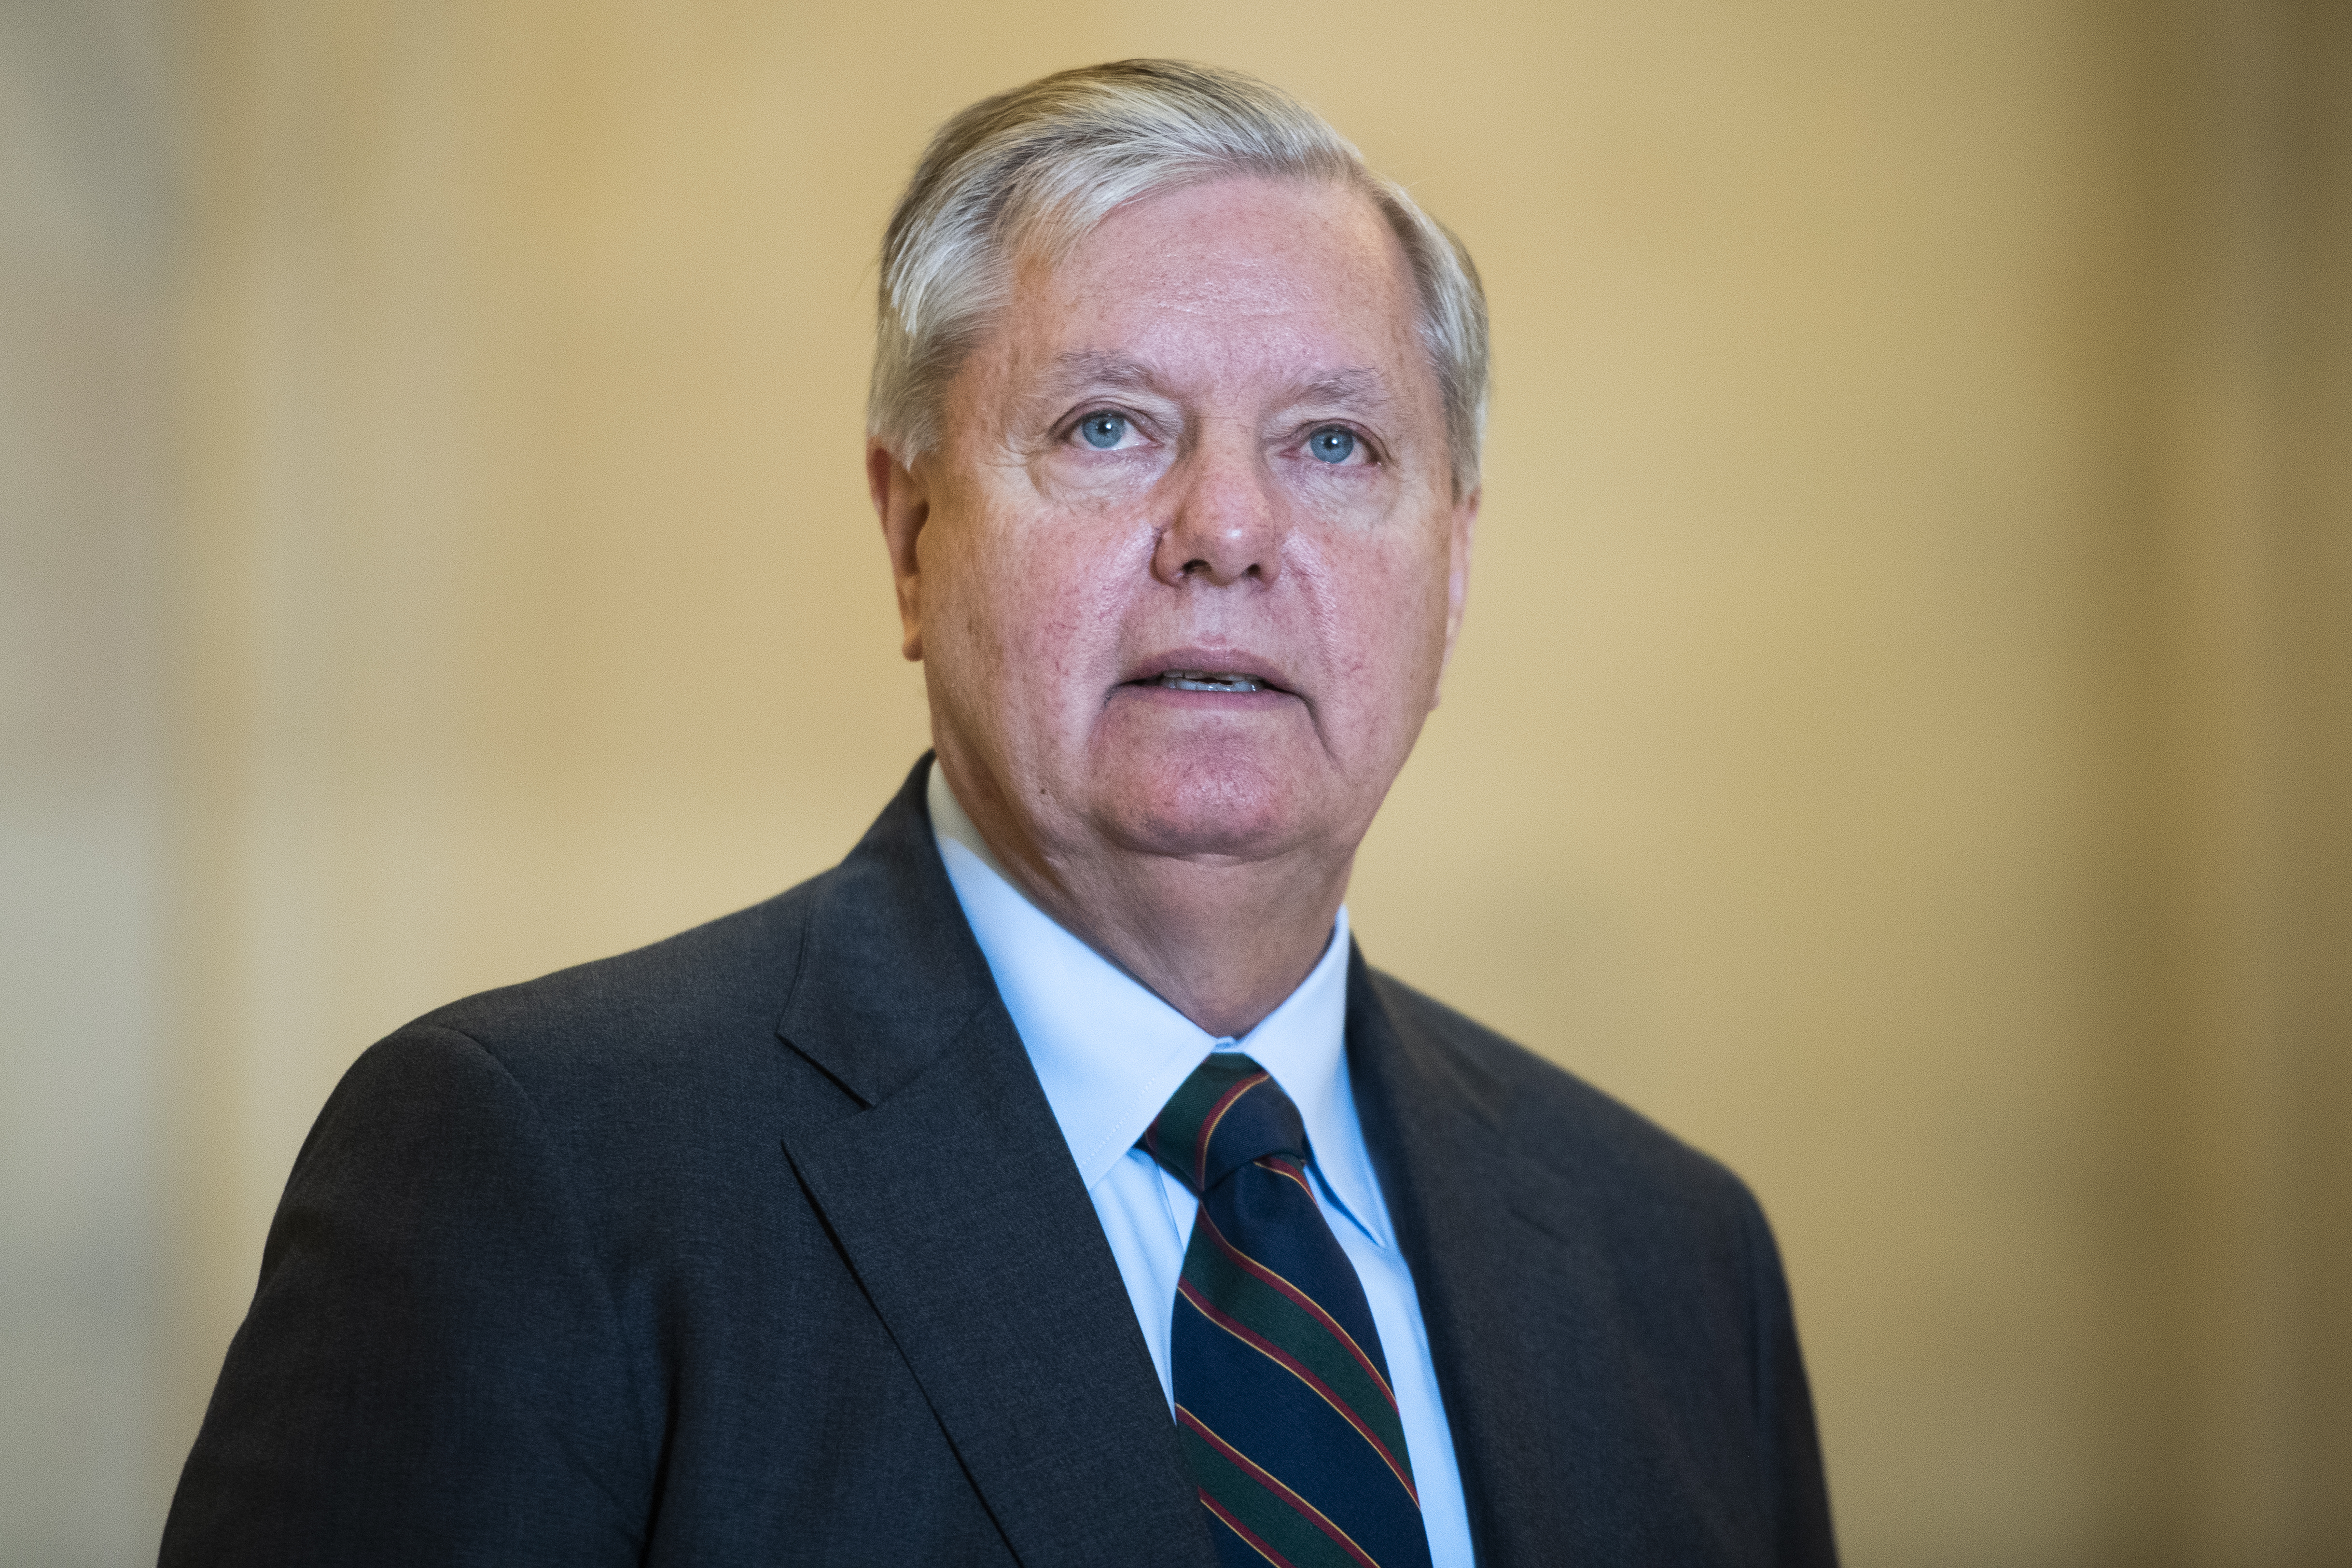 UNITED STATES - MARCH 17: Sen. Lindsey Graham, R-S.C., leaves the Senate Republican Policy luncheon in Russell Building on Tuesday, March 17, 2020. Treasury Secretary Steven Mnuchin attended to discuss the coronavirus relief package. (Photo By Tom Williams/CQ Roll Call)